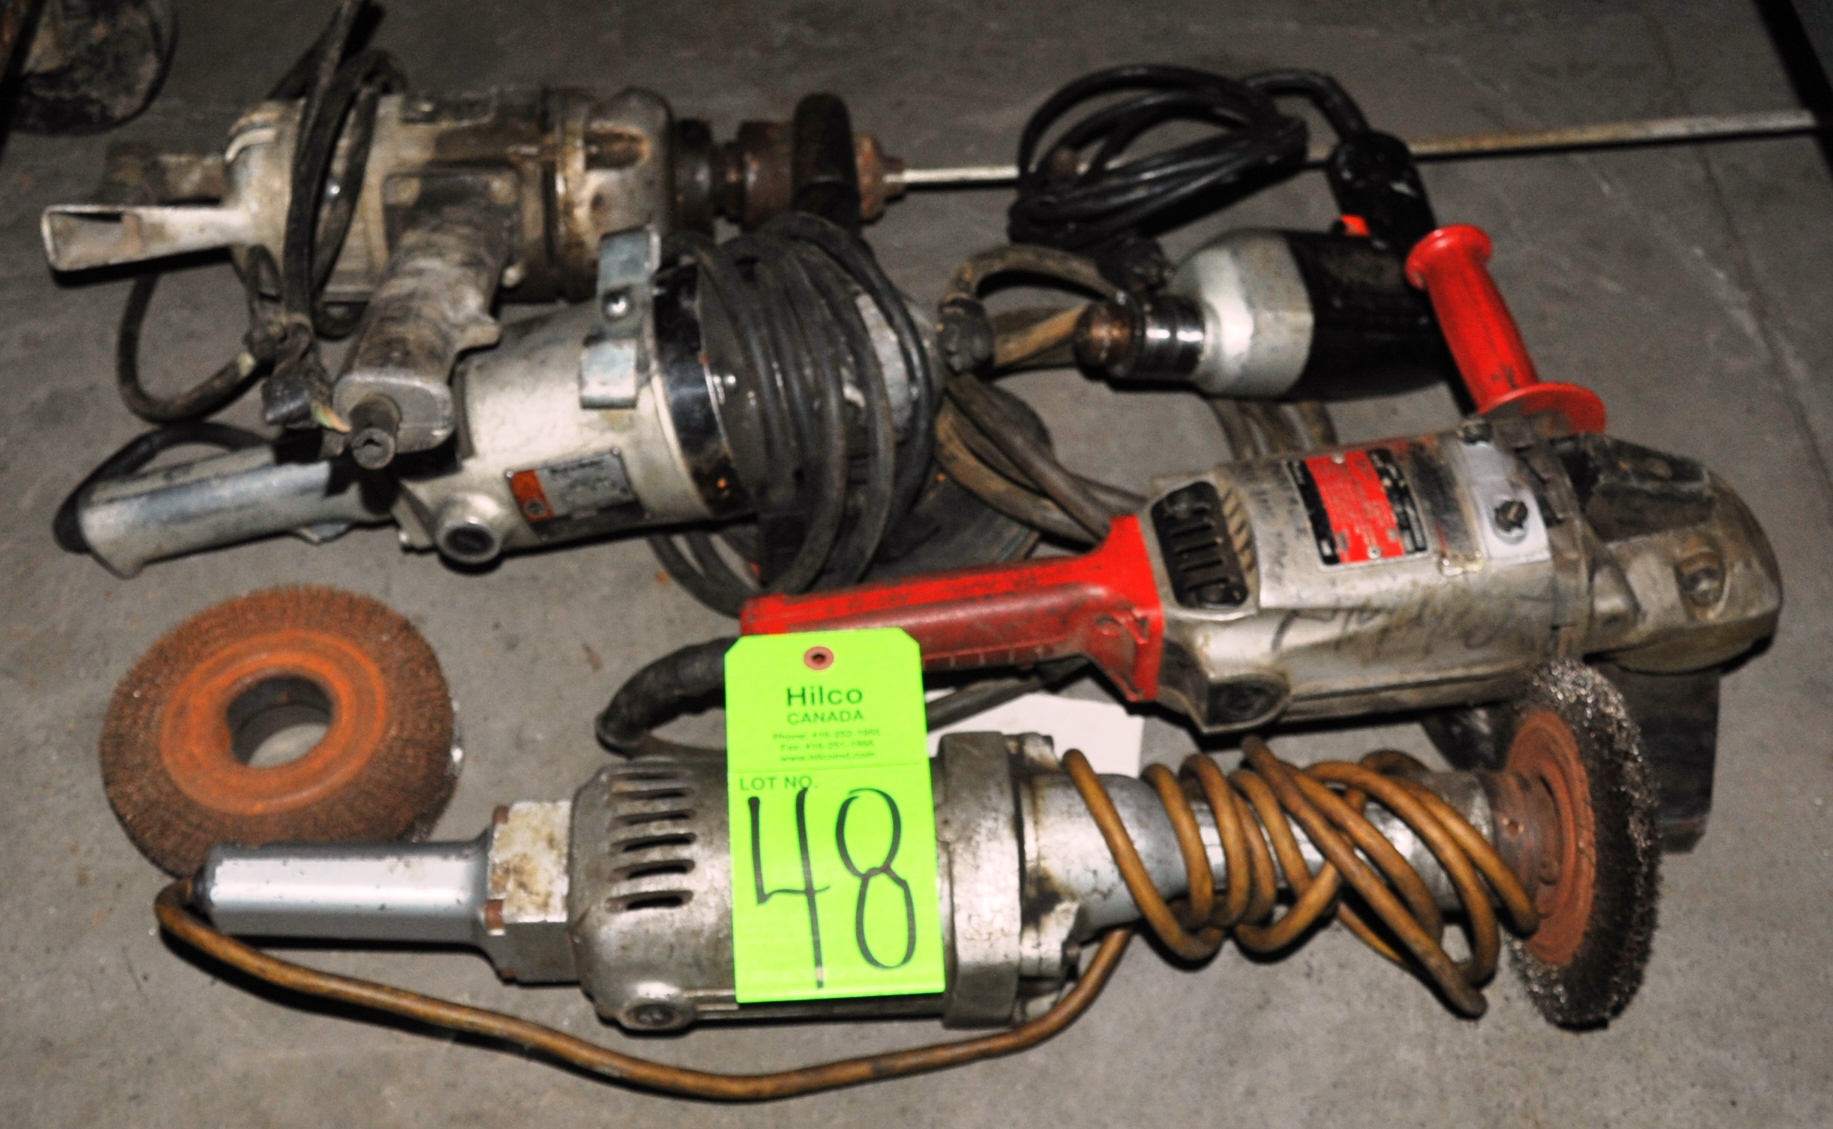 Lot 48 - Asst. Electric Angle Grinders, Drill, Mixing Drill Hand Tools